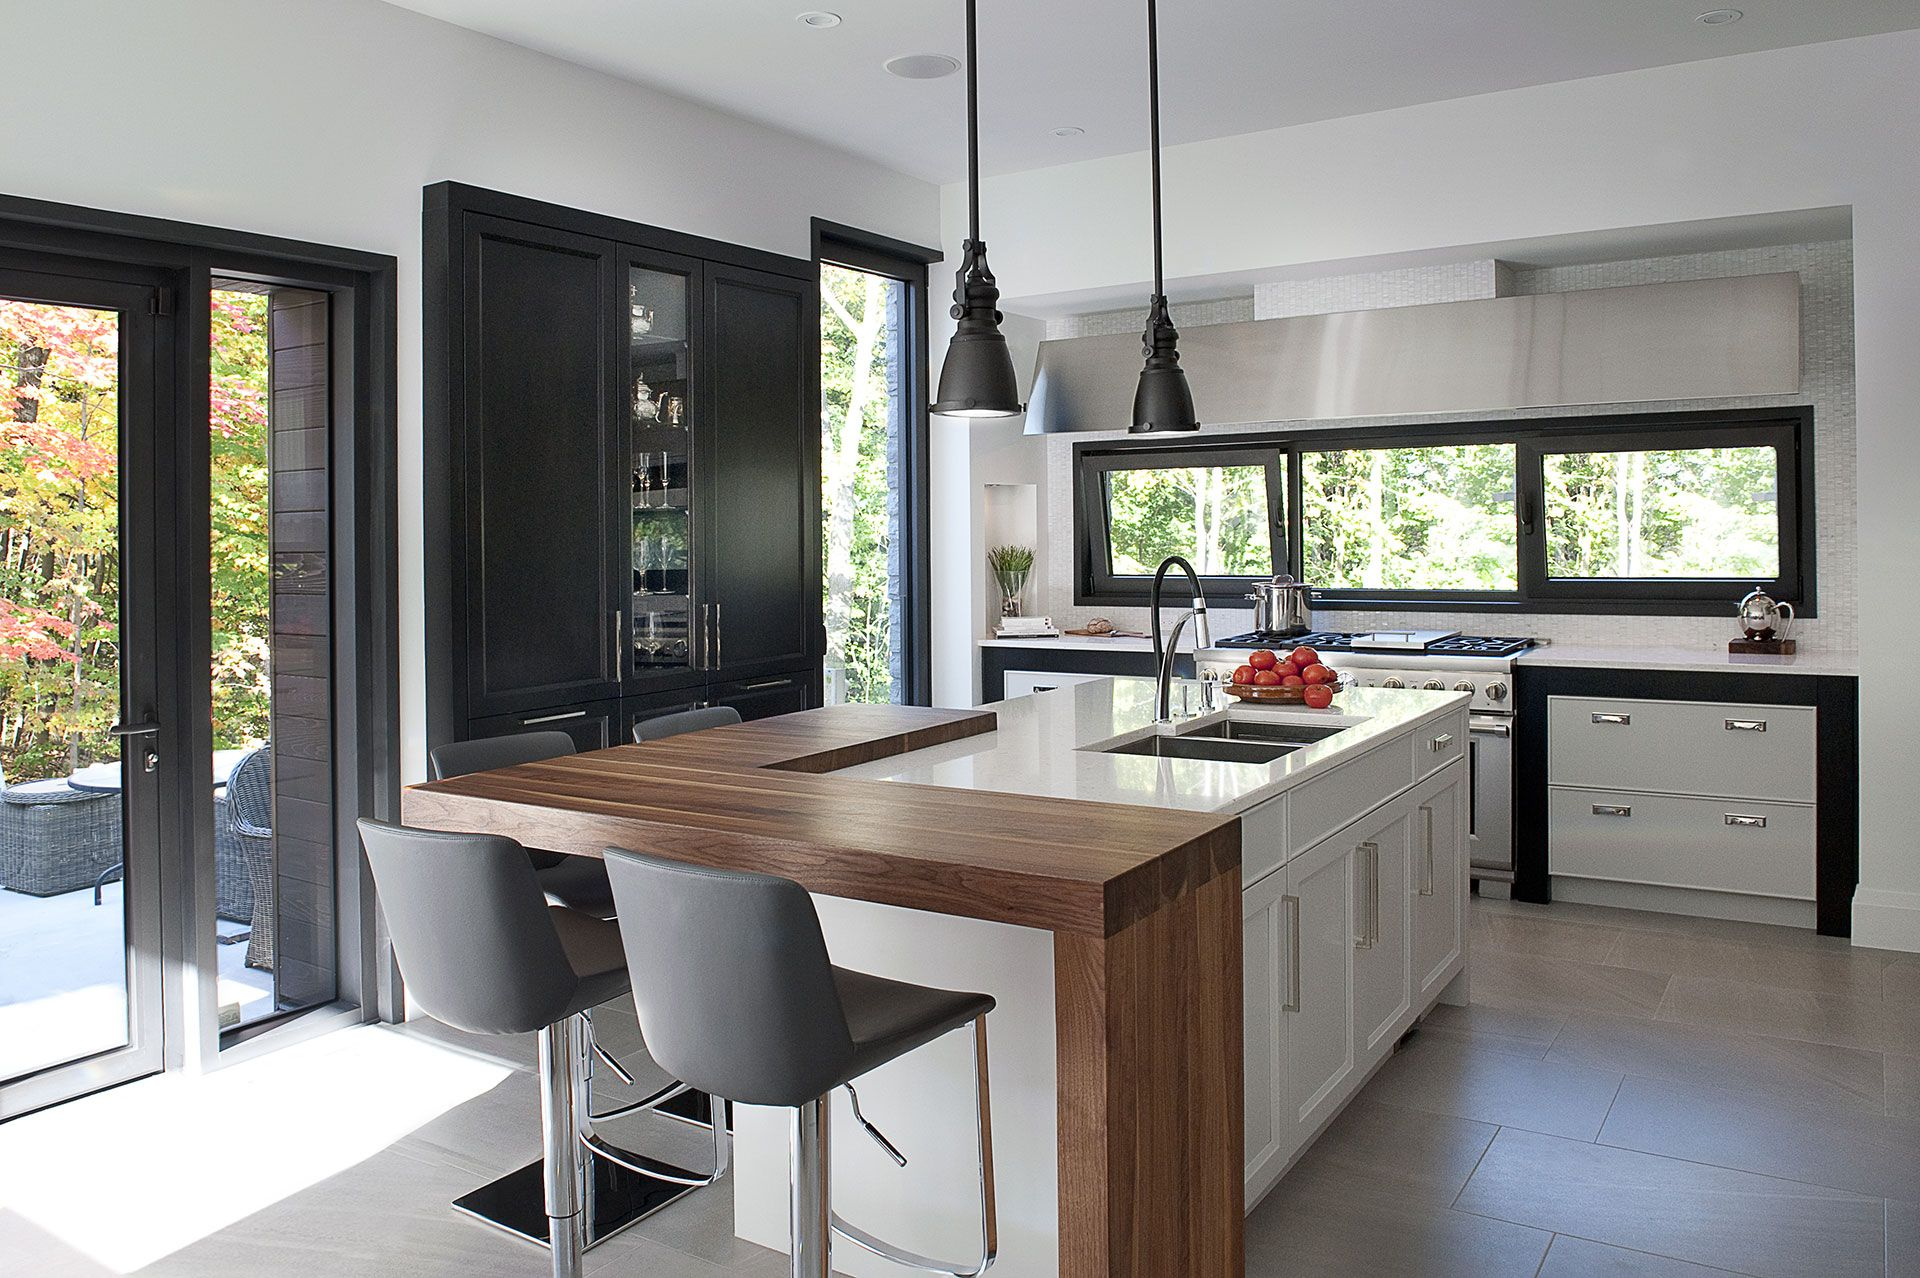 Cuisine contemporaine Plus | Kitchen | Pinterest | Cuisines ...